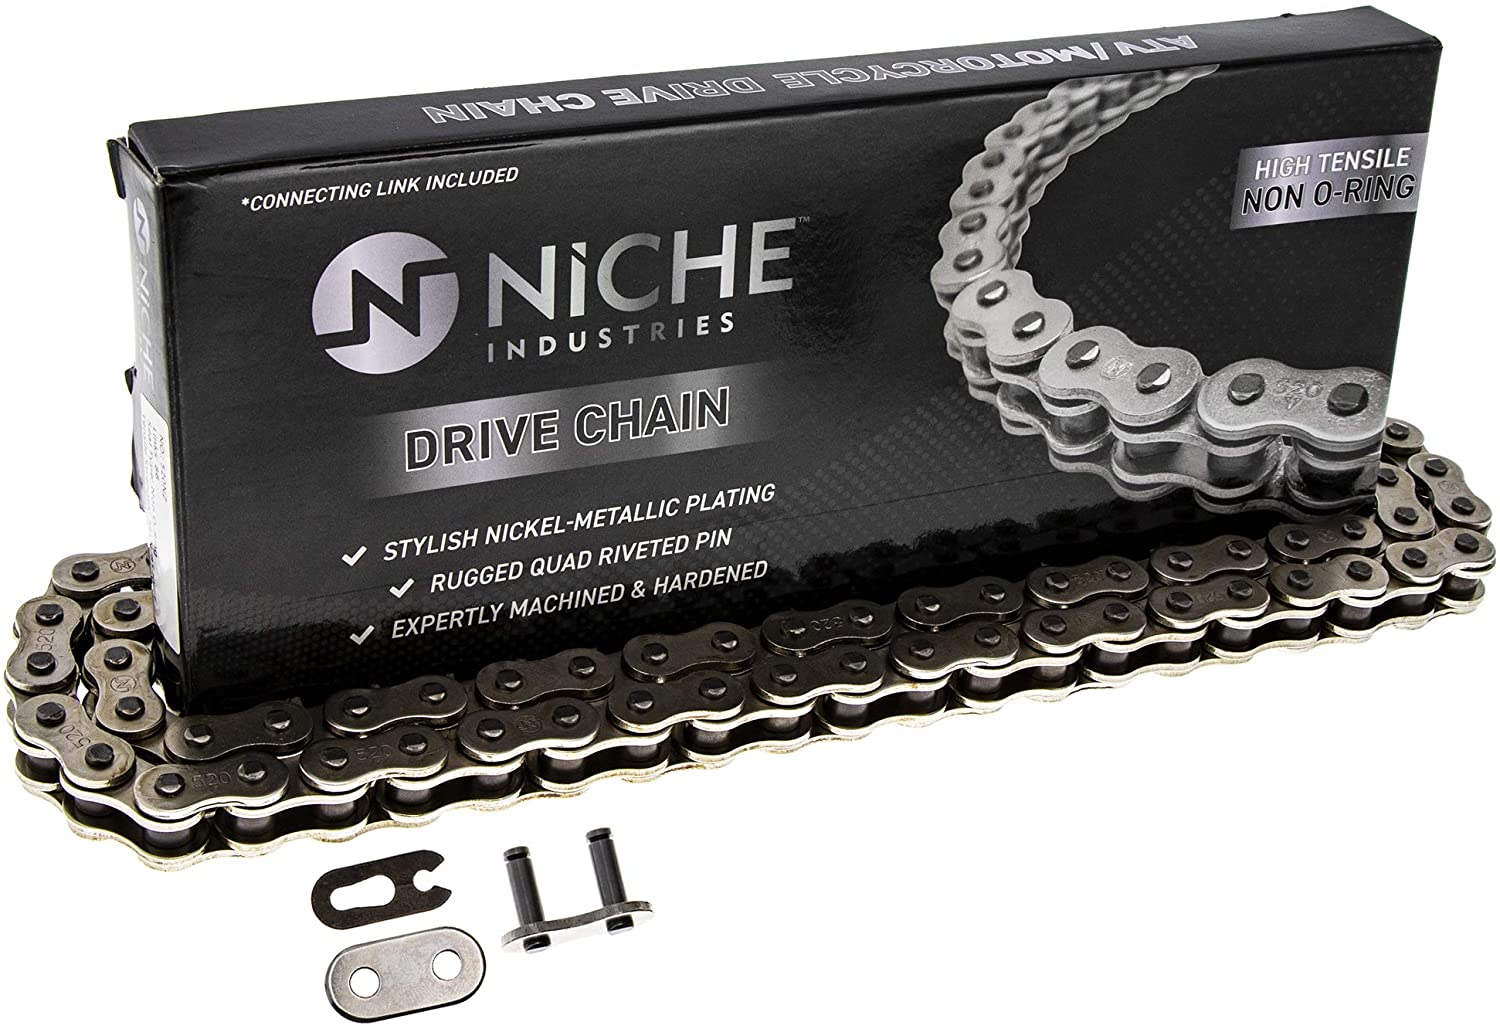 NICHE 520 Drive Chain 86 Links Standard Non O-Ring with Connecting Master Link